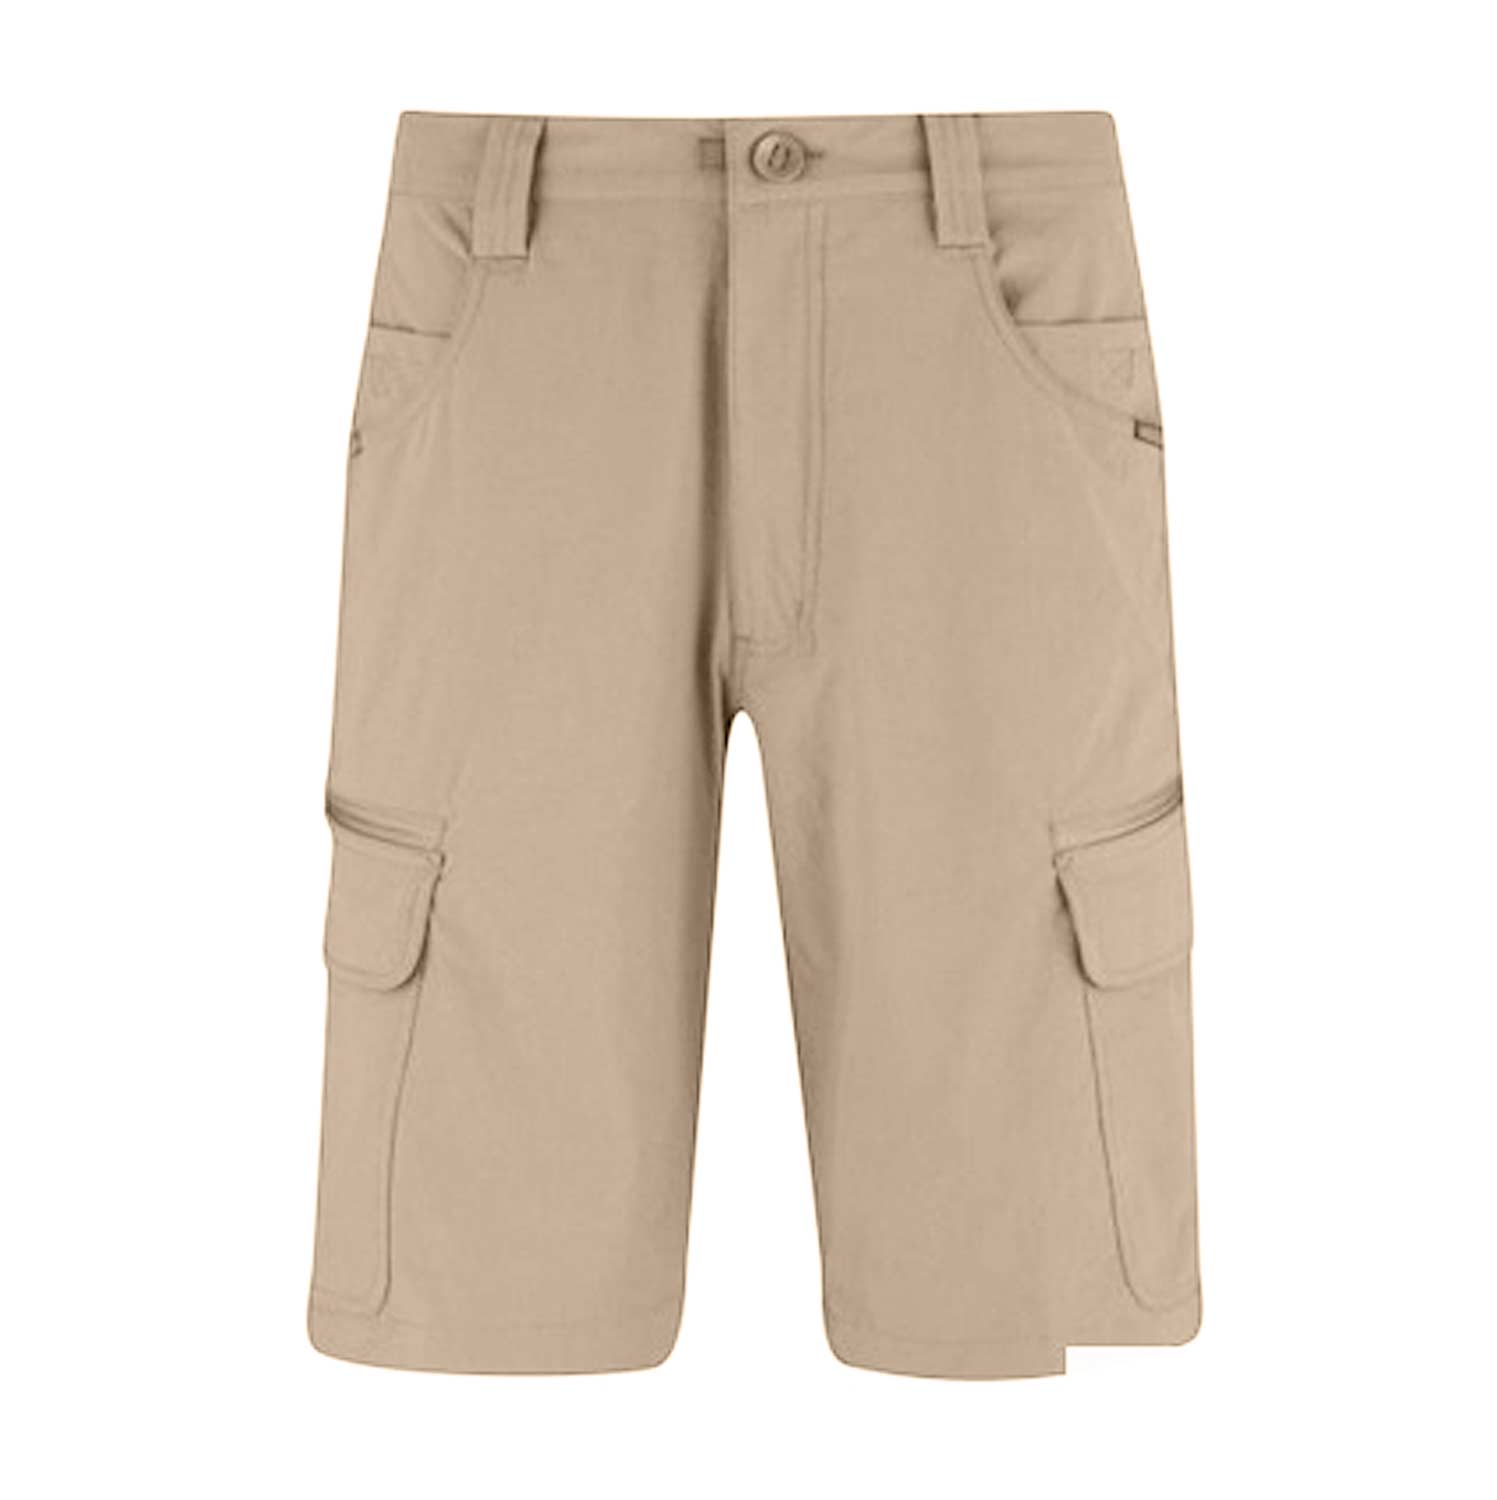 Propper Summer Weight Tactical Shorts